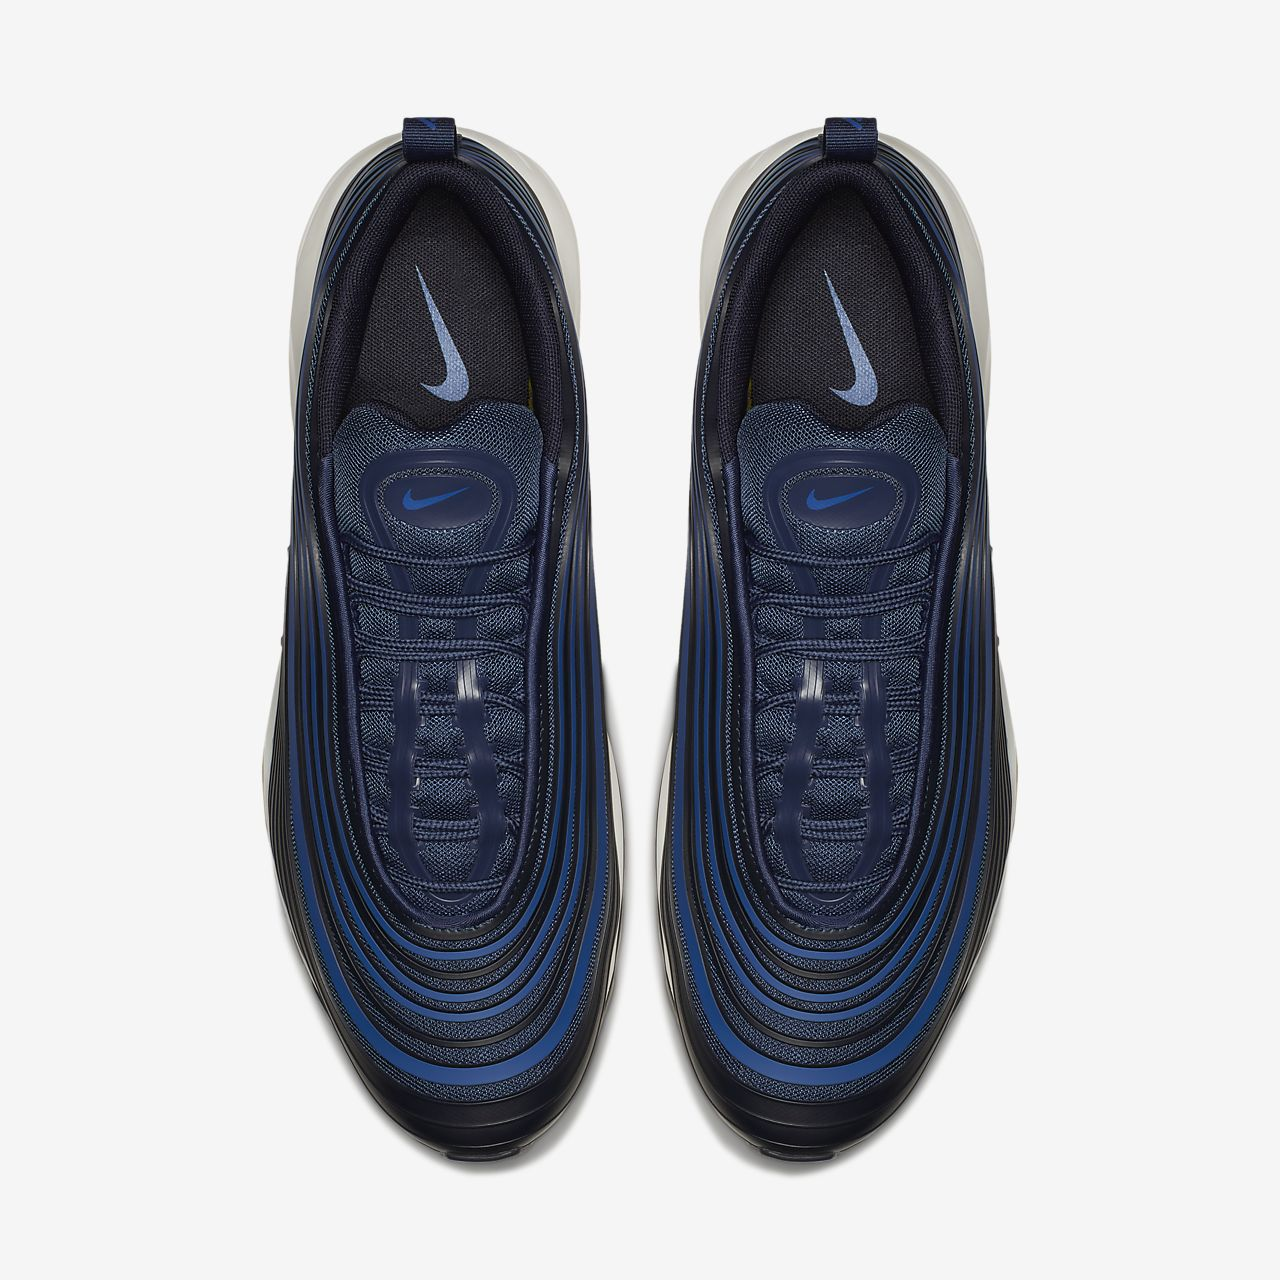 Nike Air Max 97 Ultra '17 Premium Men's Shoe